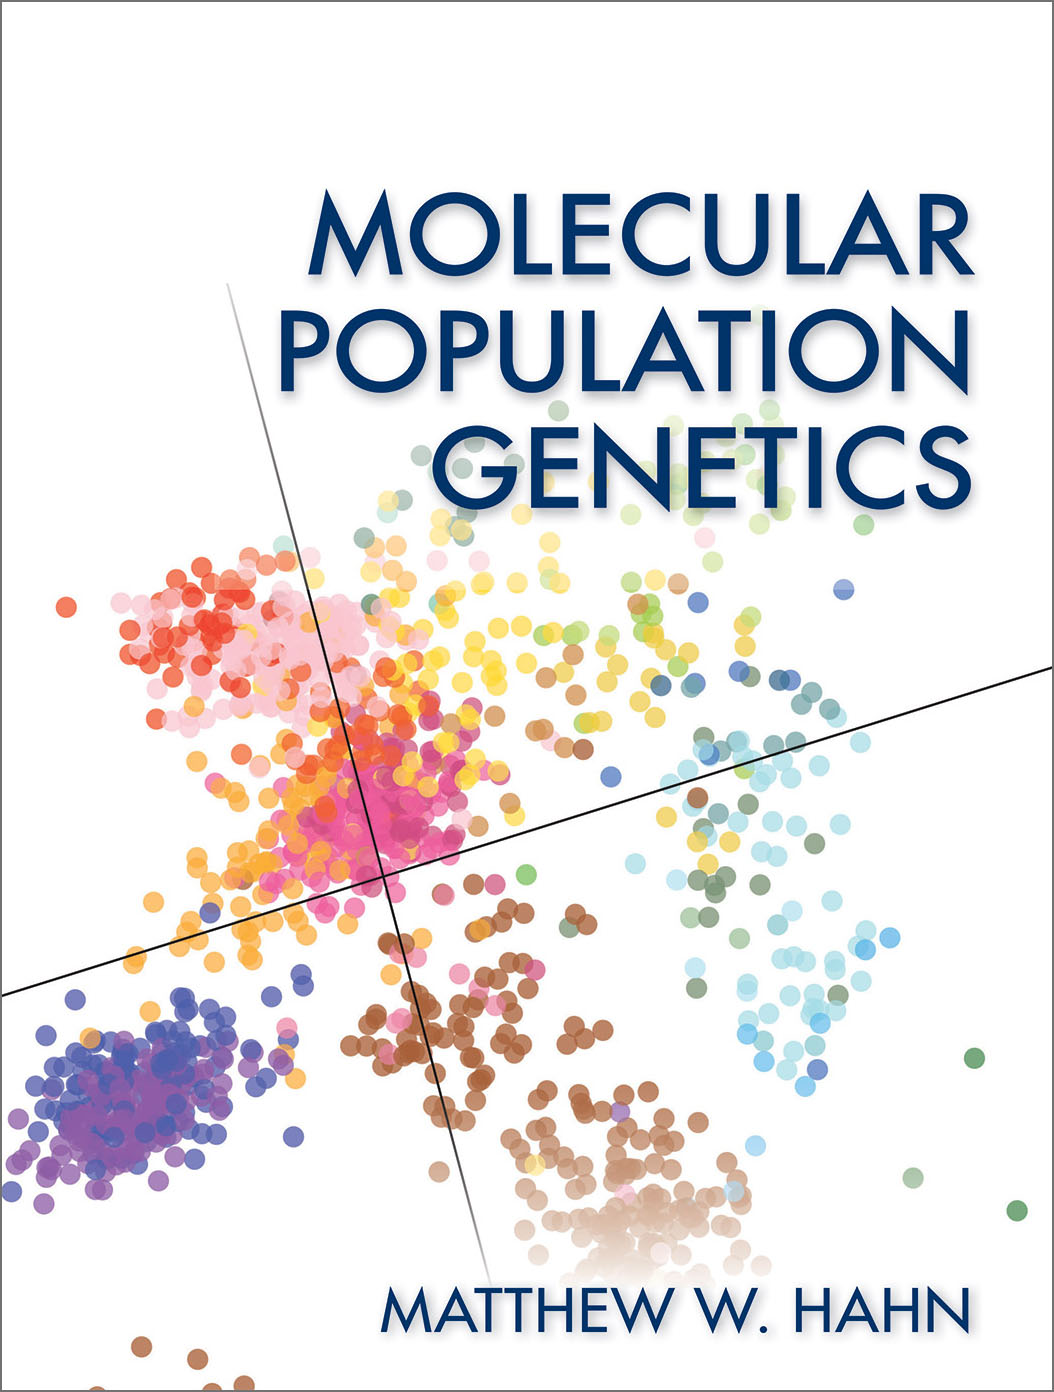 Molecular Population Genetics Instructor Resources